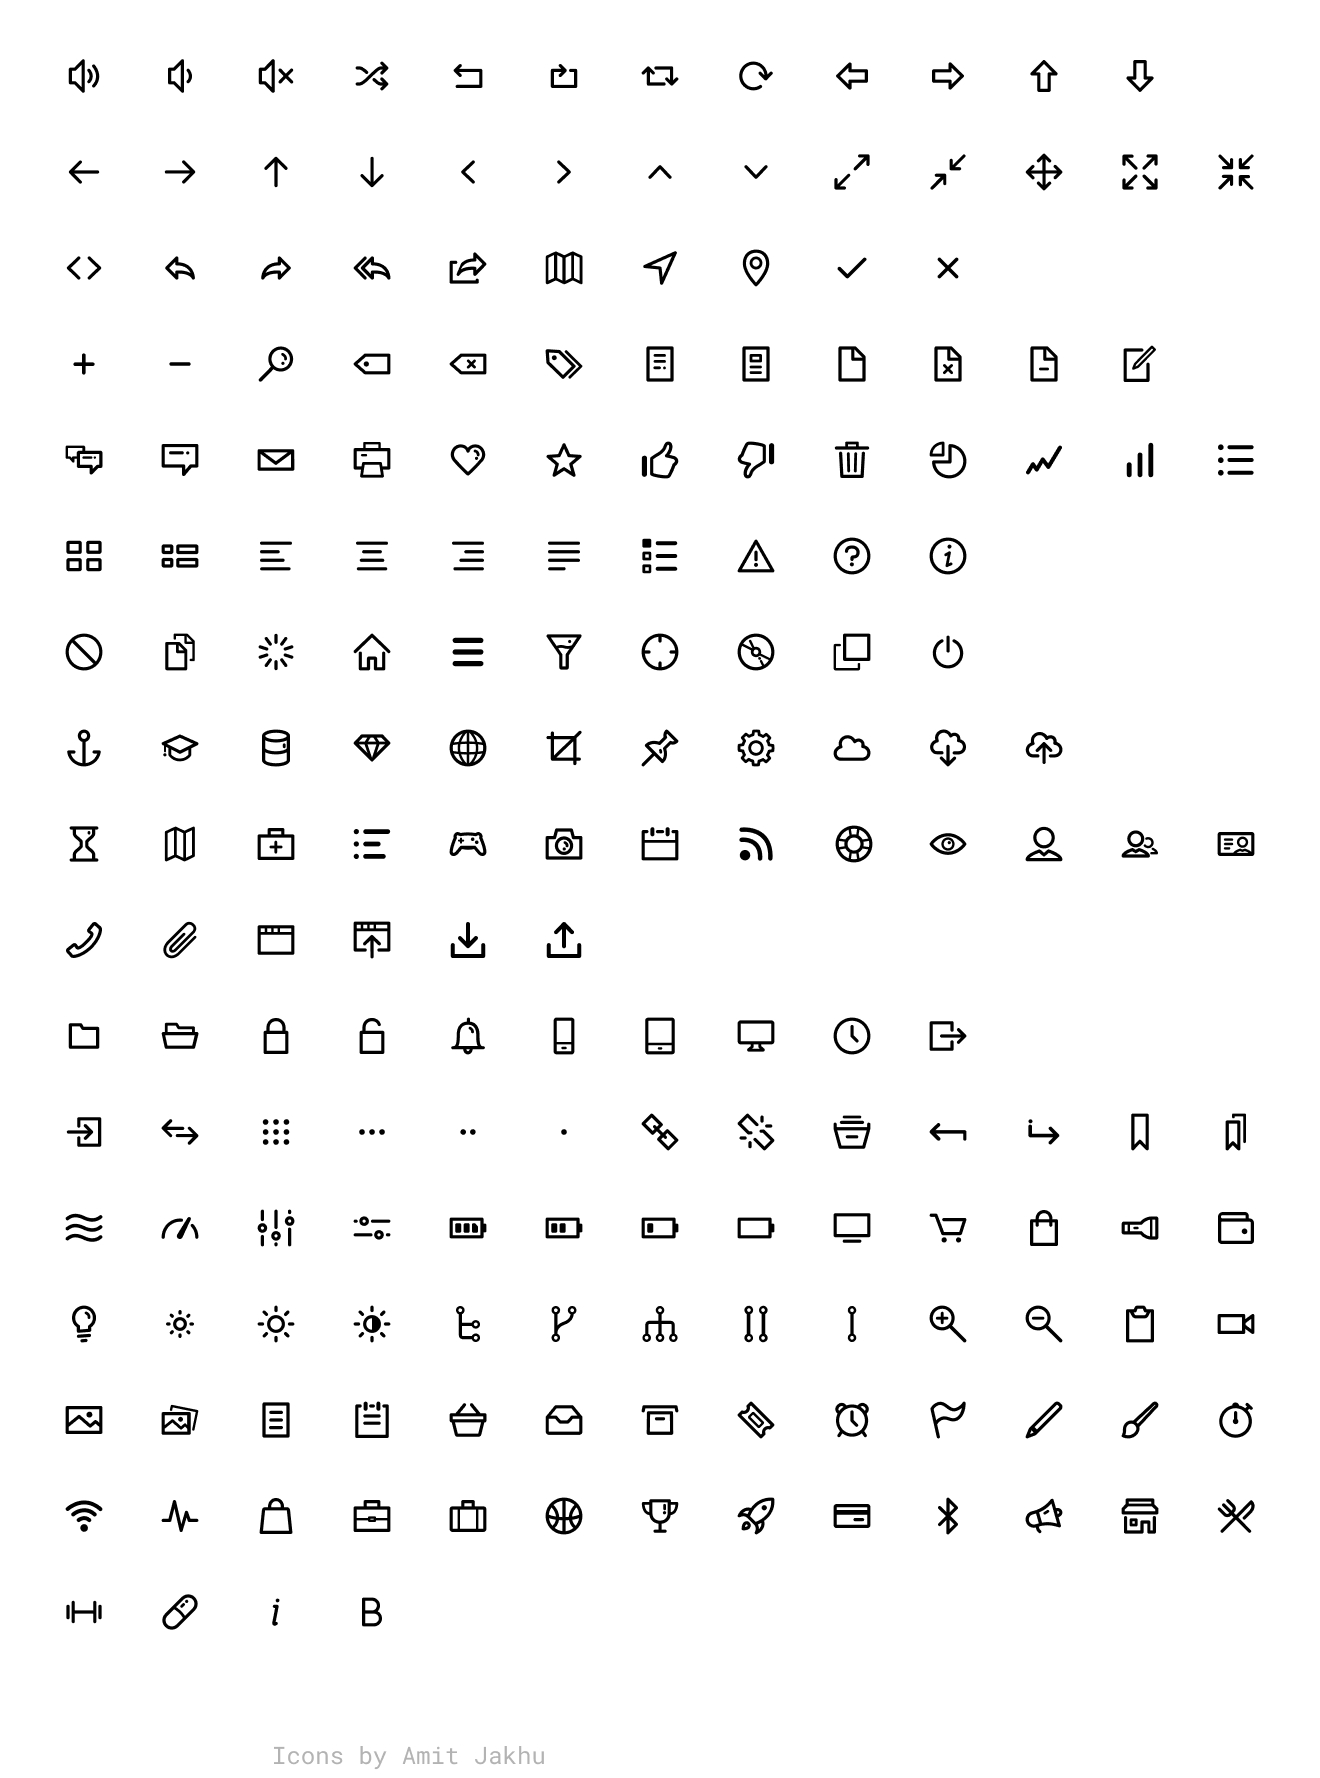 Dripicons Figma Library - Figma library for the Dripicons iconset by Amit Jakhu.